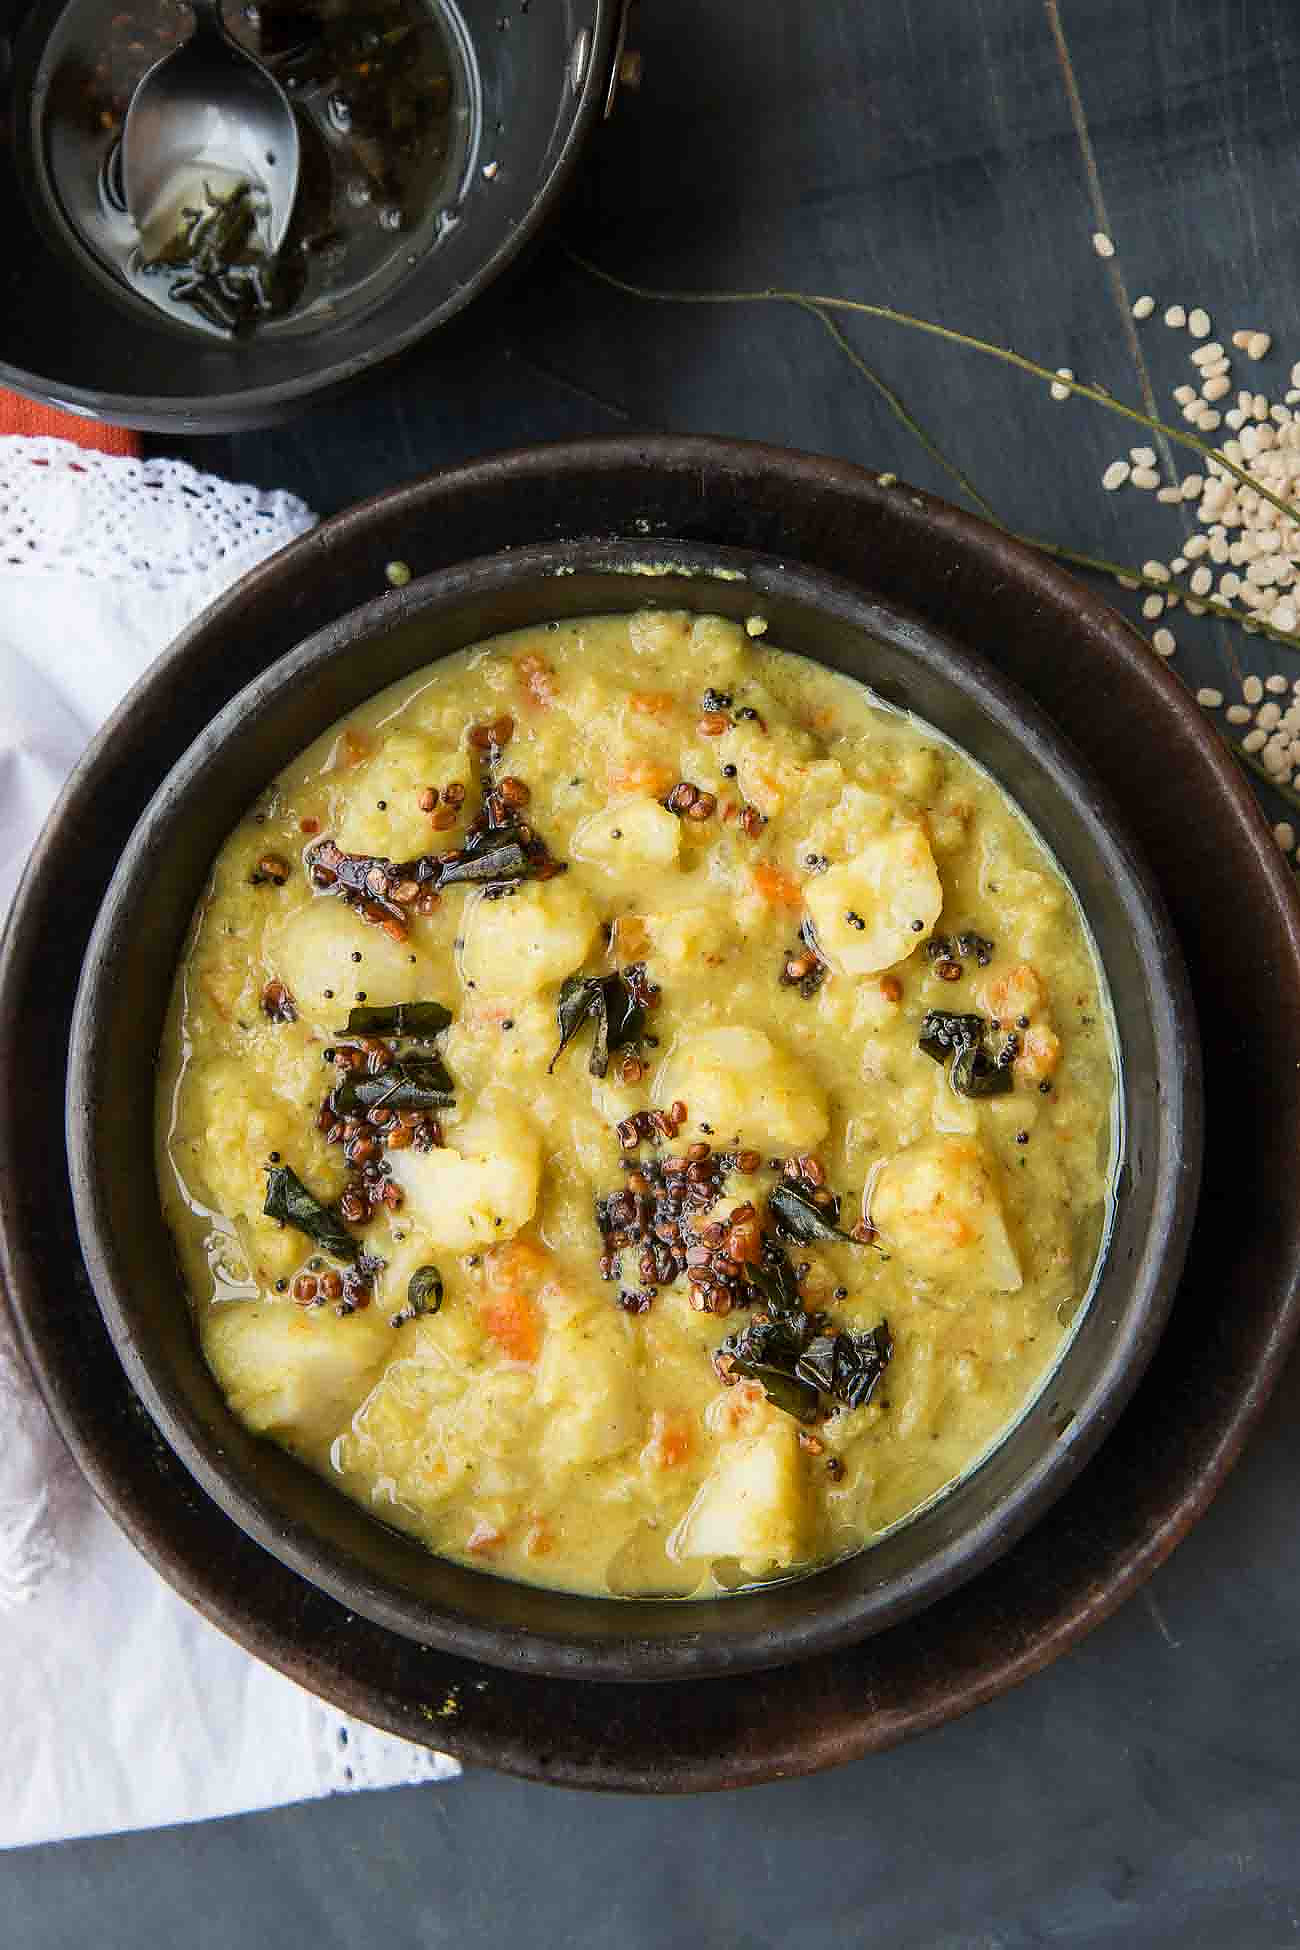 Mixed Vegetable Poricha Kootu Recipe (Steamed Vegetable in Coconut and Lentil Curry)